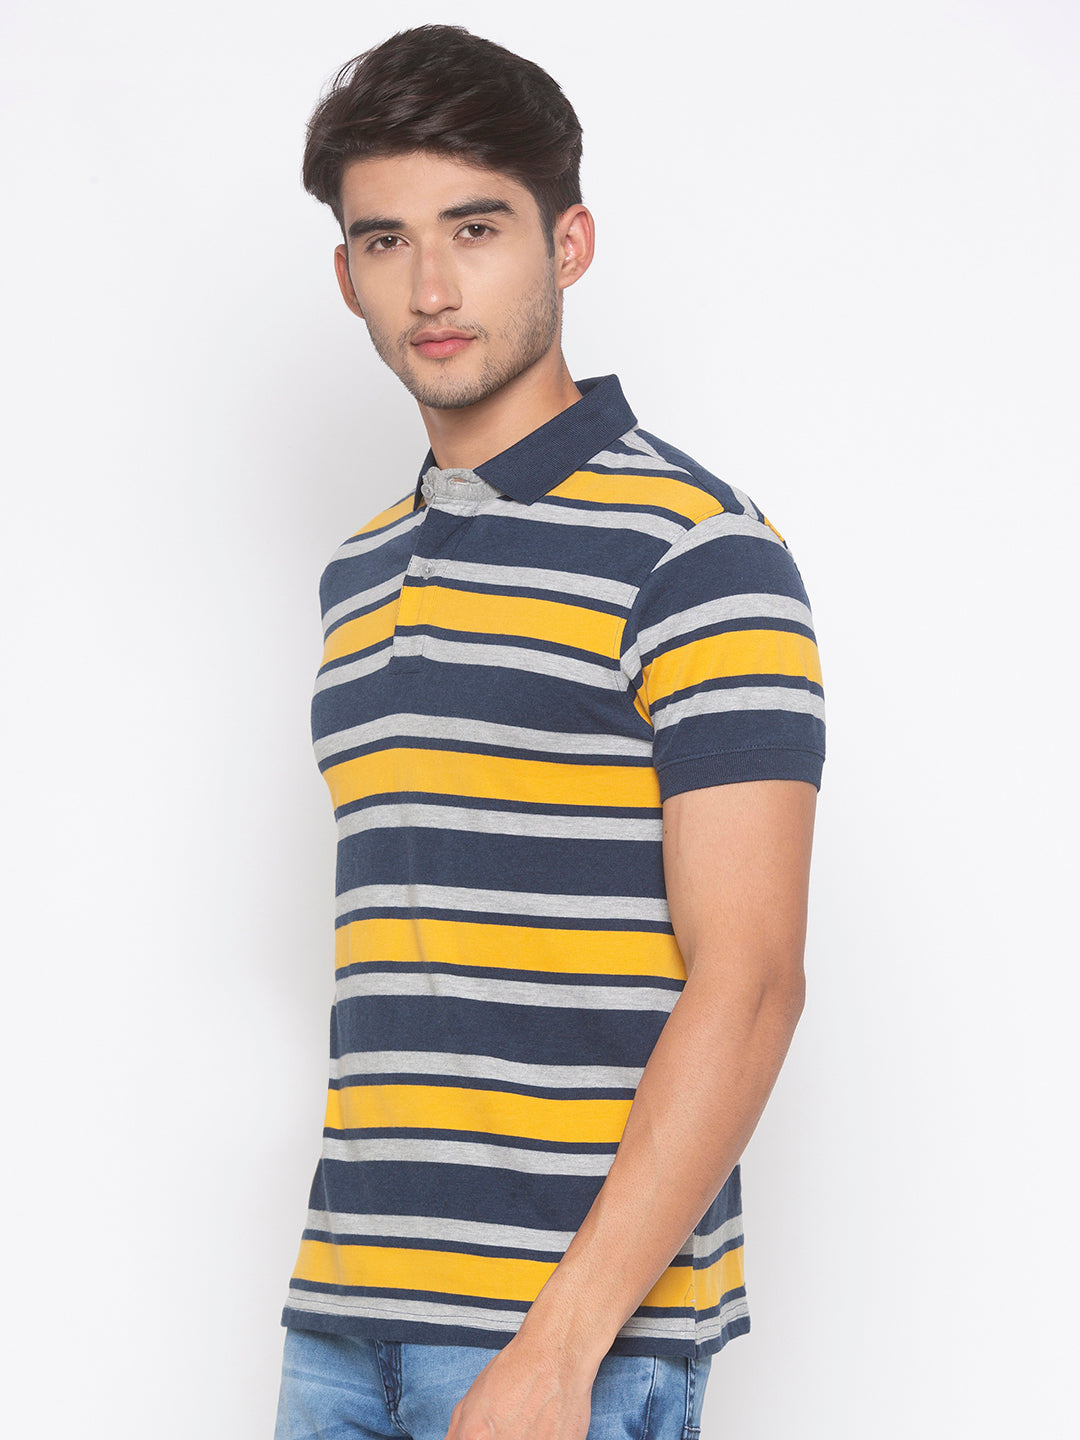 Globus Mustard & Navy Blue Striped T-Shirt-2